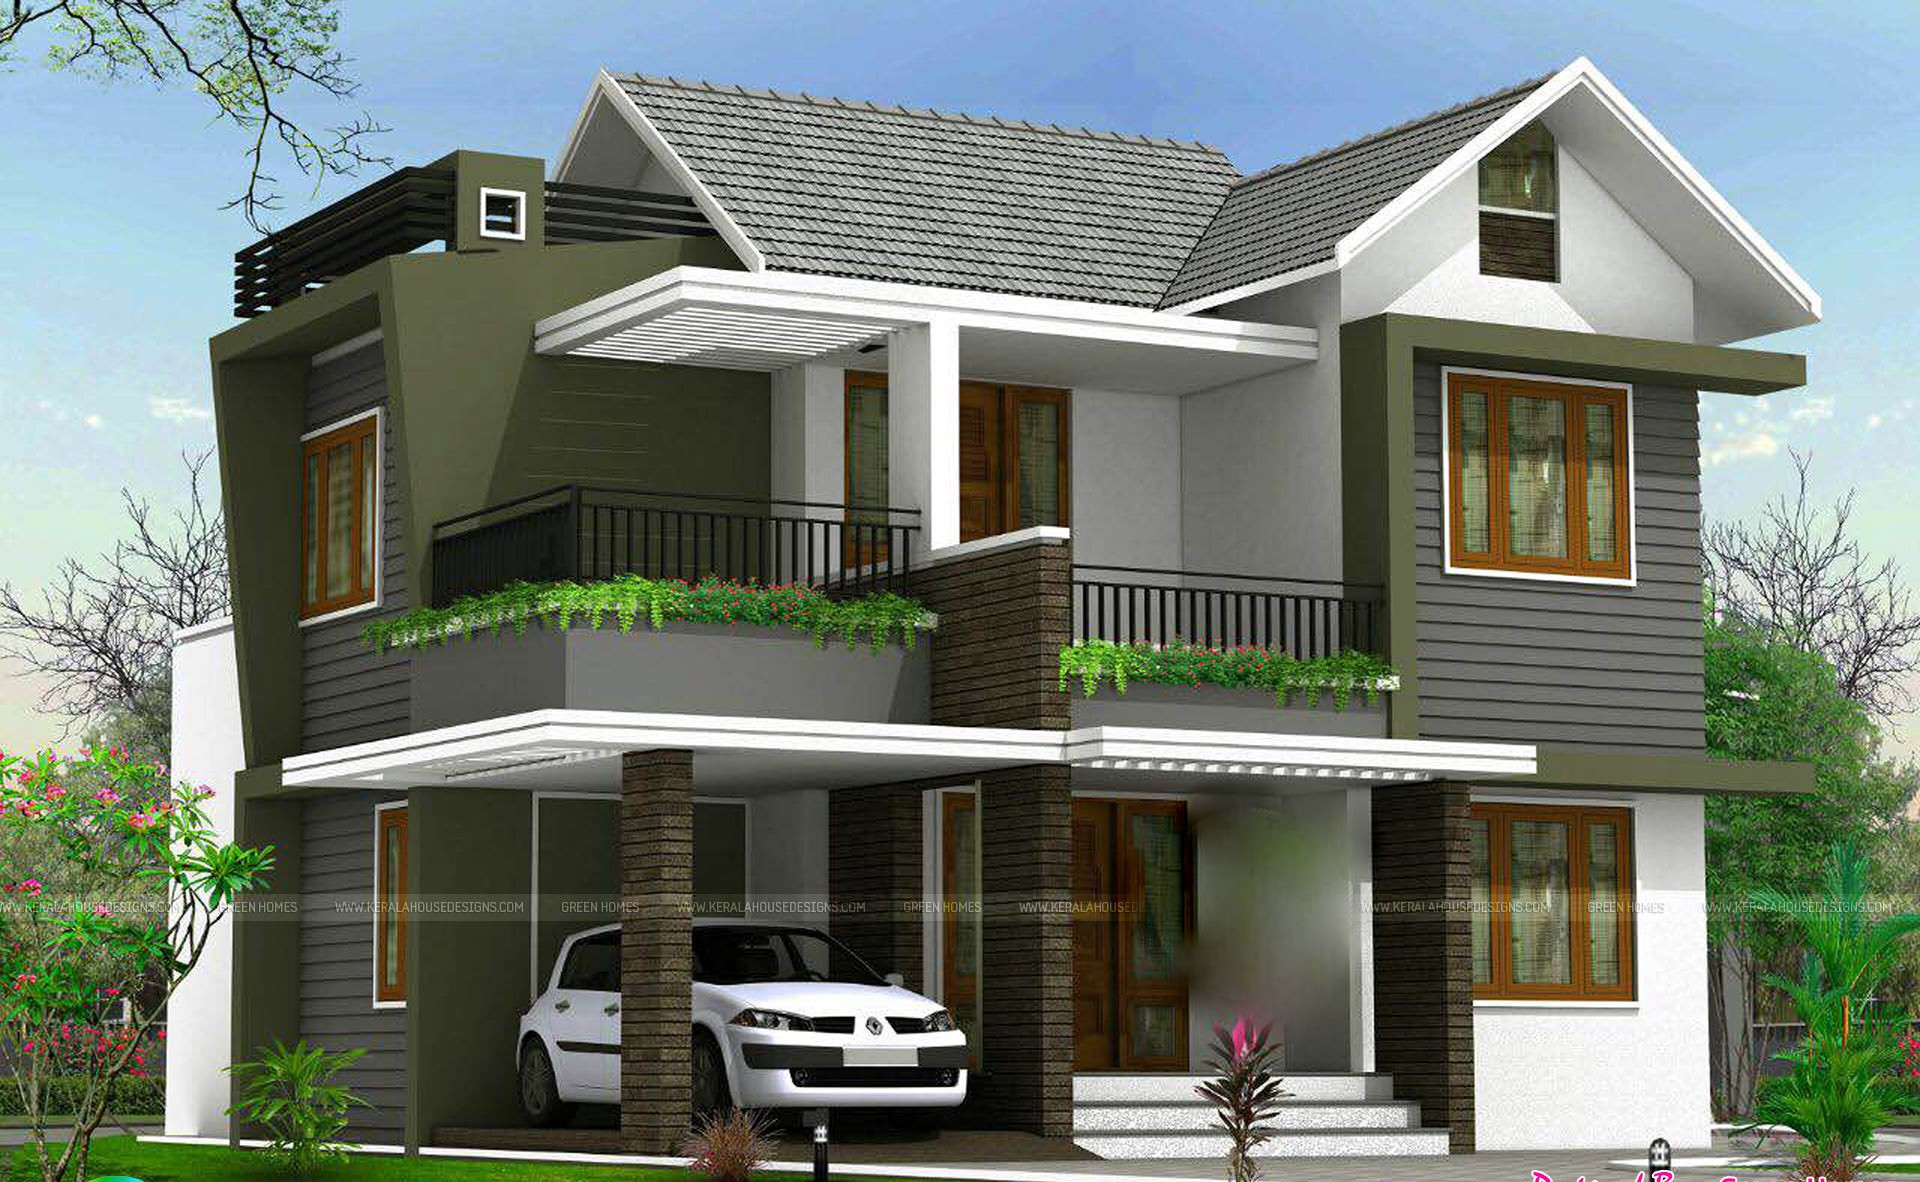 Roof Design Ideas: 1738 Square Feet 4 Bedroom Double Floor Sloping Roof Home